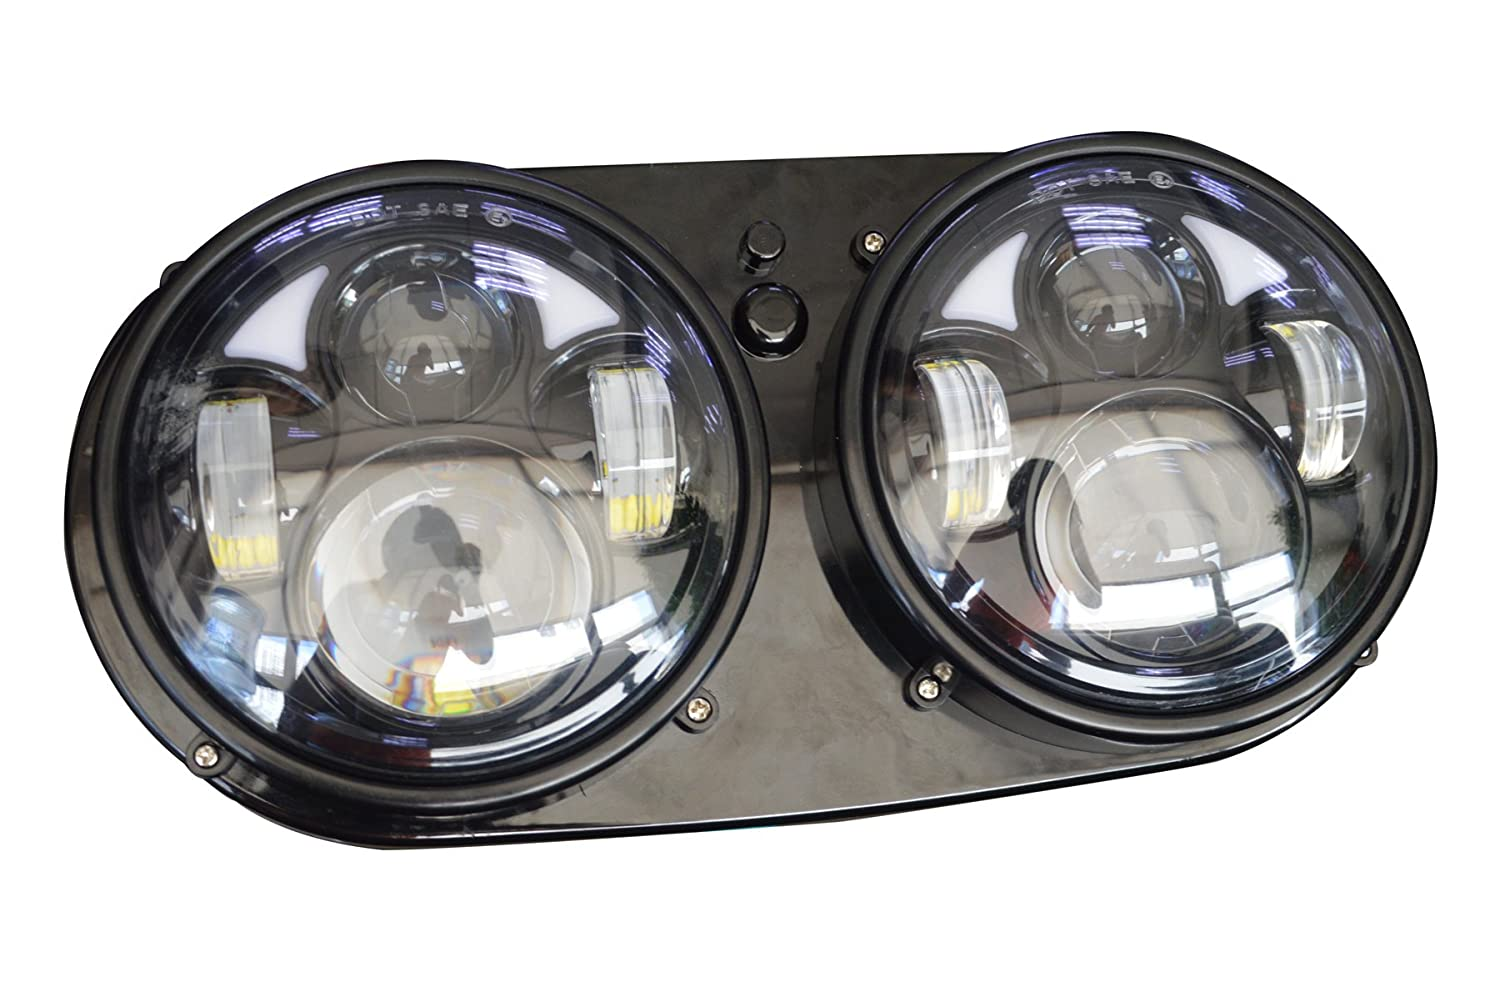 Motorcycle Headlight Assembly : Motorcycle dual led headlight daymaker assembly fit harley